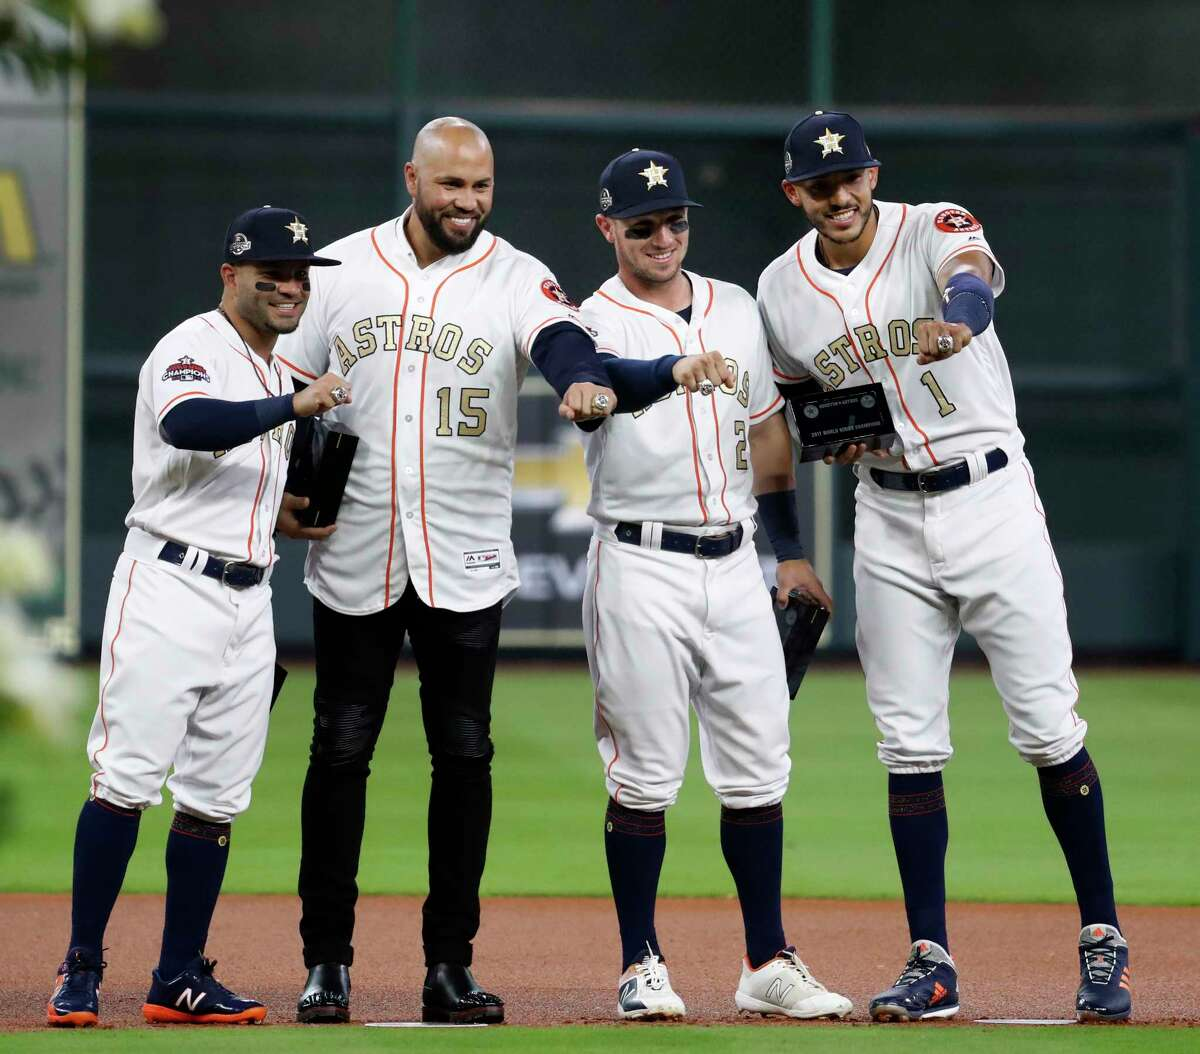 Houston Astros Carlos Correa (1) and Alex Bregman (2), Carlos Beltran, and Jose Altuve their new World Series rings before the start of an MLB baseball game at Minute Maid Park, Tuesday, April 3, 2018, in Houston.